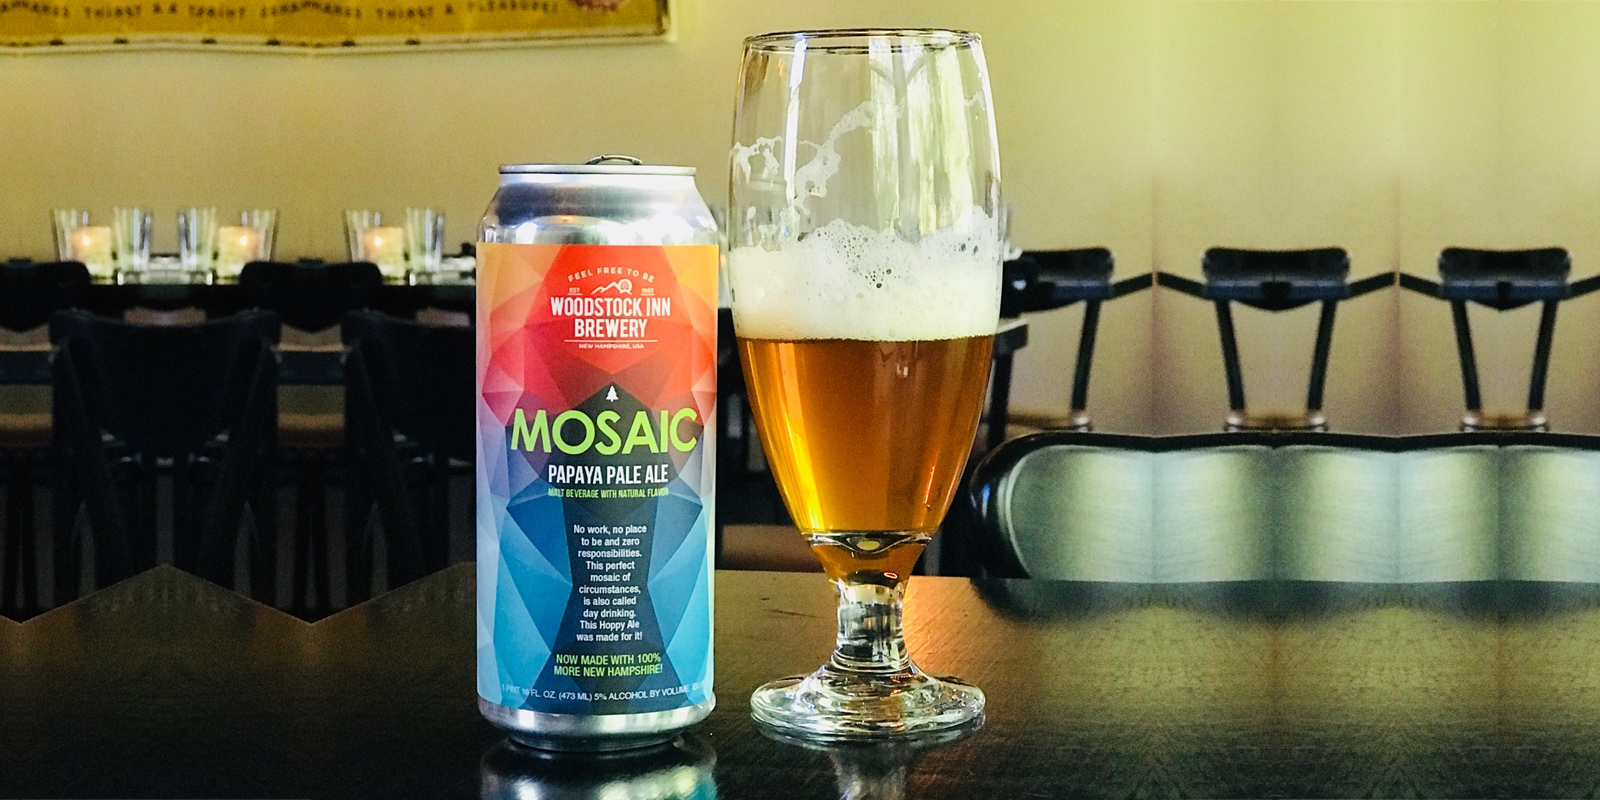 The Curious Benefits of Mosaic Papaya Pale Ale